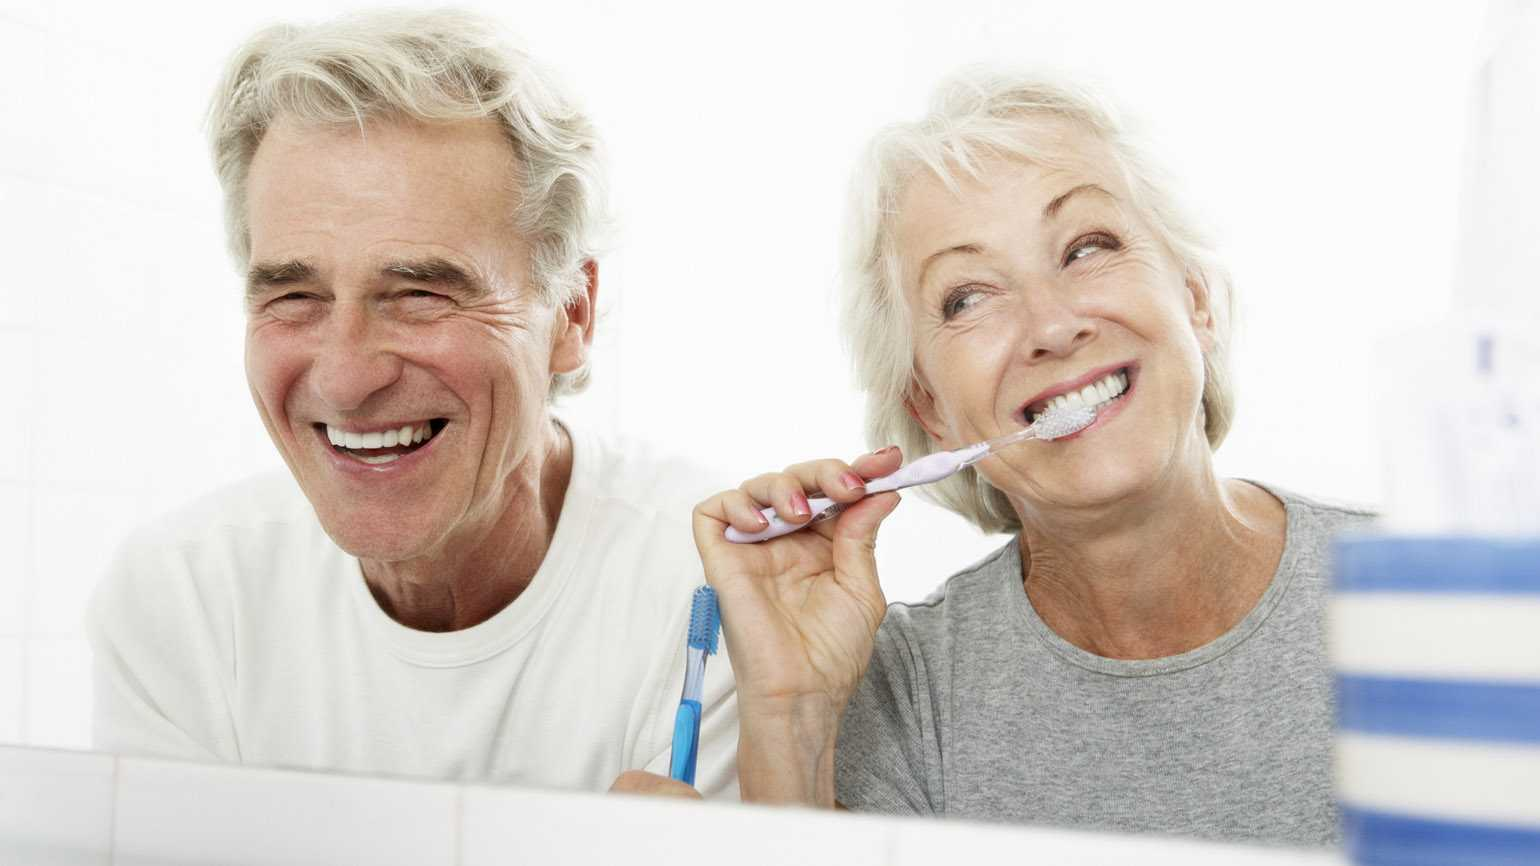 An older couple brushing their teeth together.